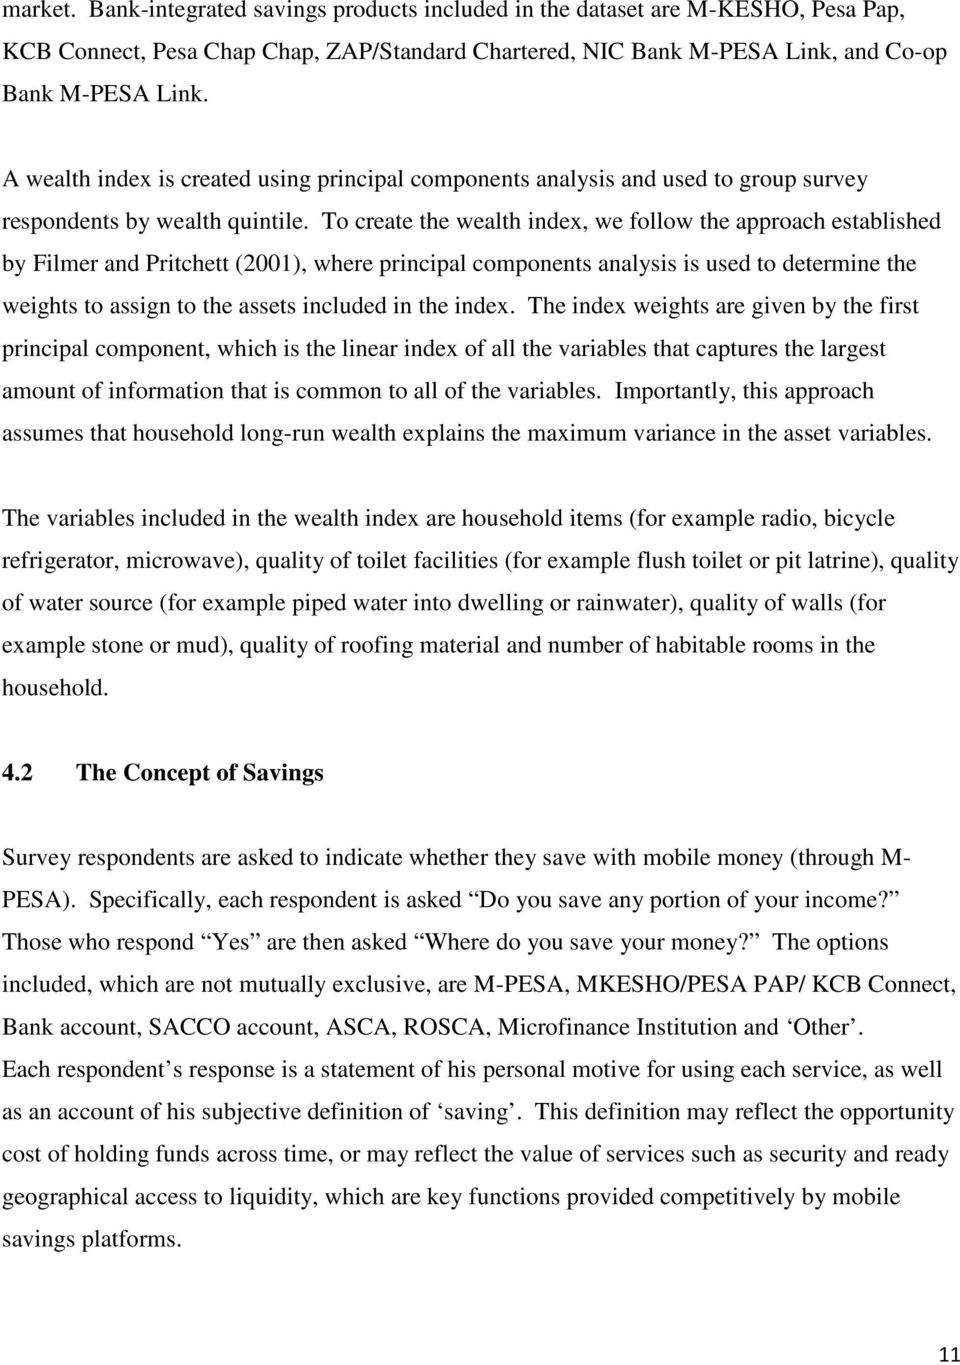 To create the wealth index, we follow the approach established by Filmer and Pritchett (2001), where principal components analysis is used to determine the weights to assign to the assets included in